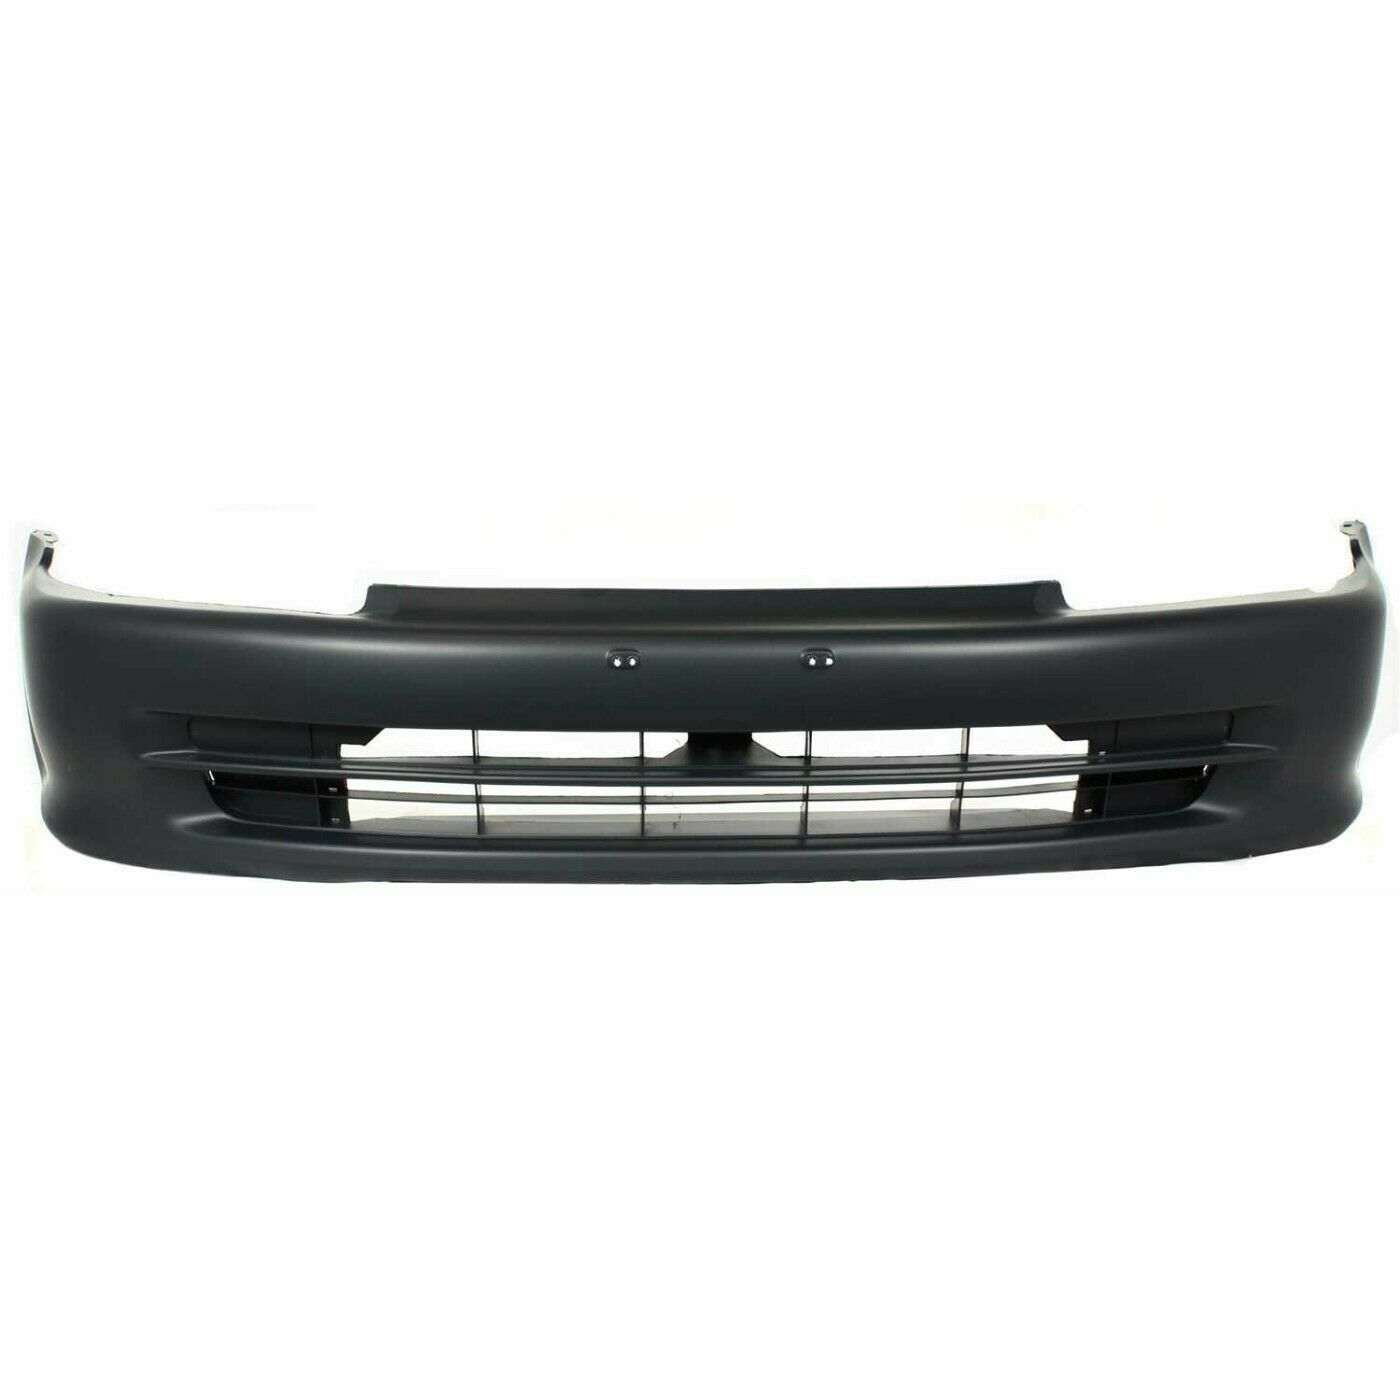 1992-1995 Honda Civic Sedan Front Bumper Painted